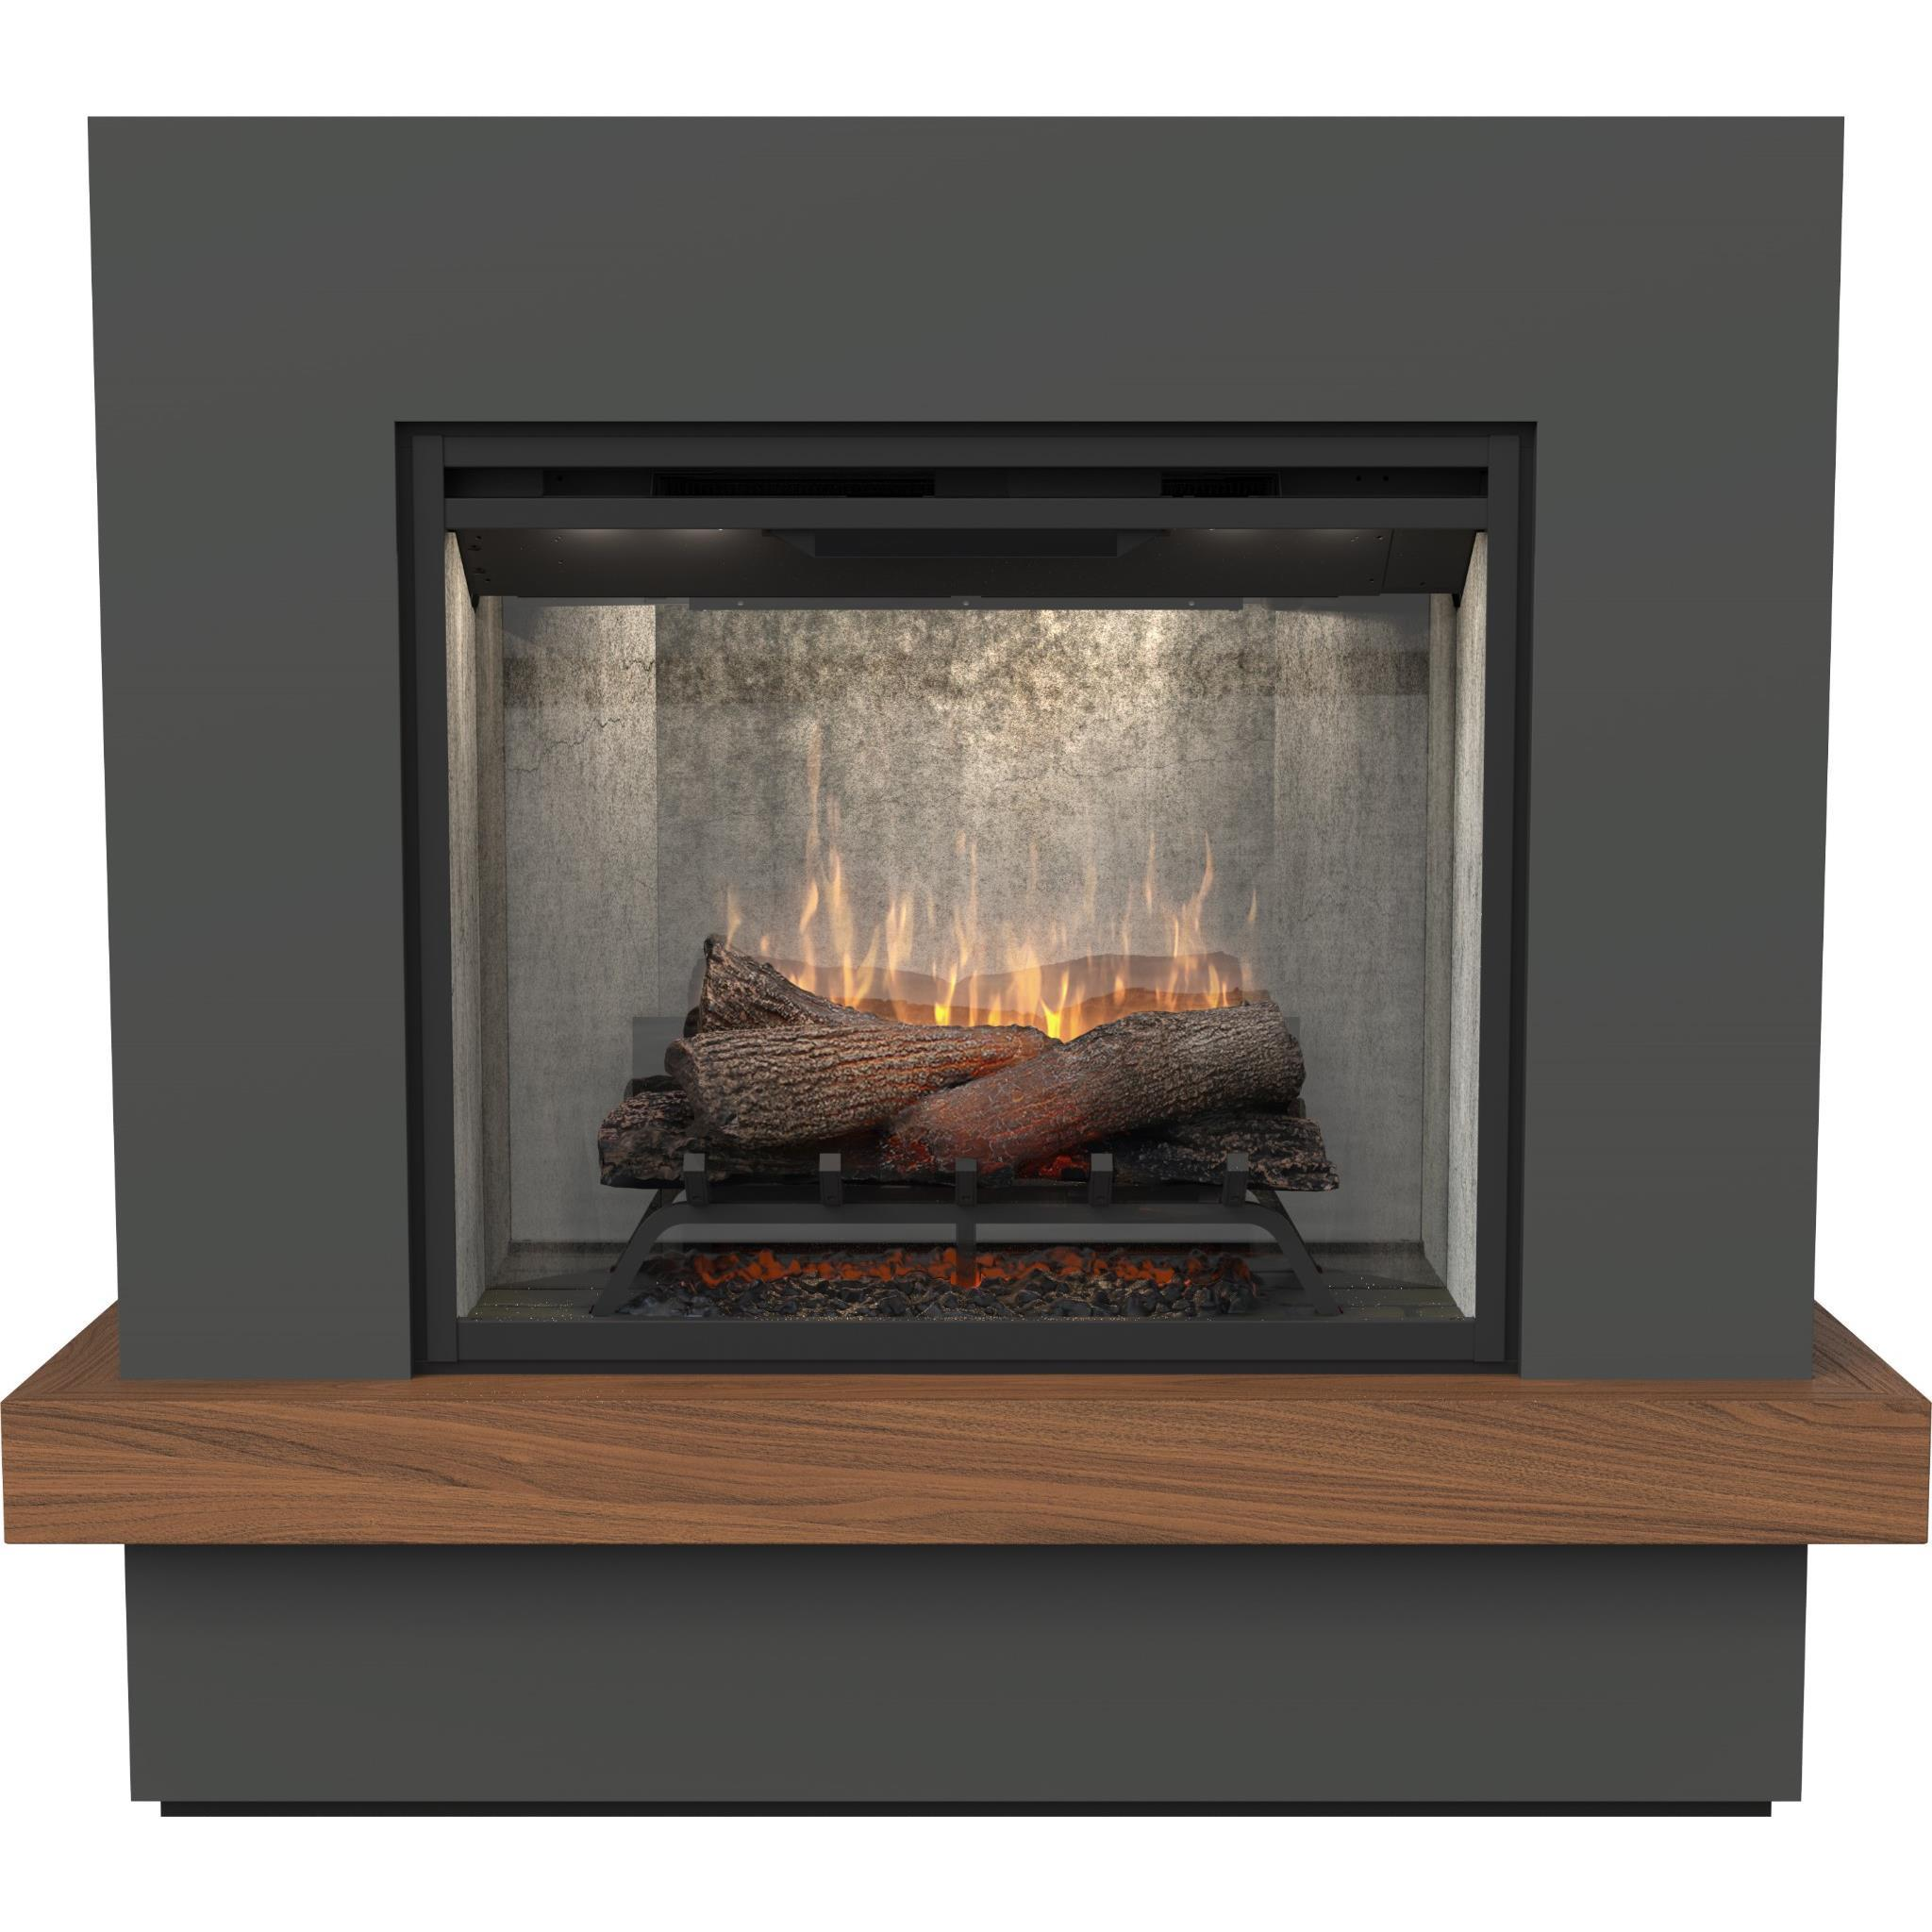 Dimplex Sherwood 2kW Revillusion Suite Electric Firebox with Mantel